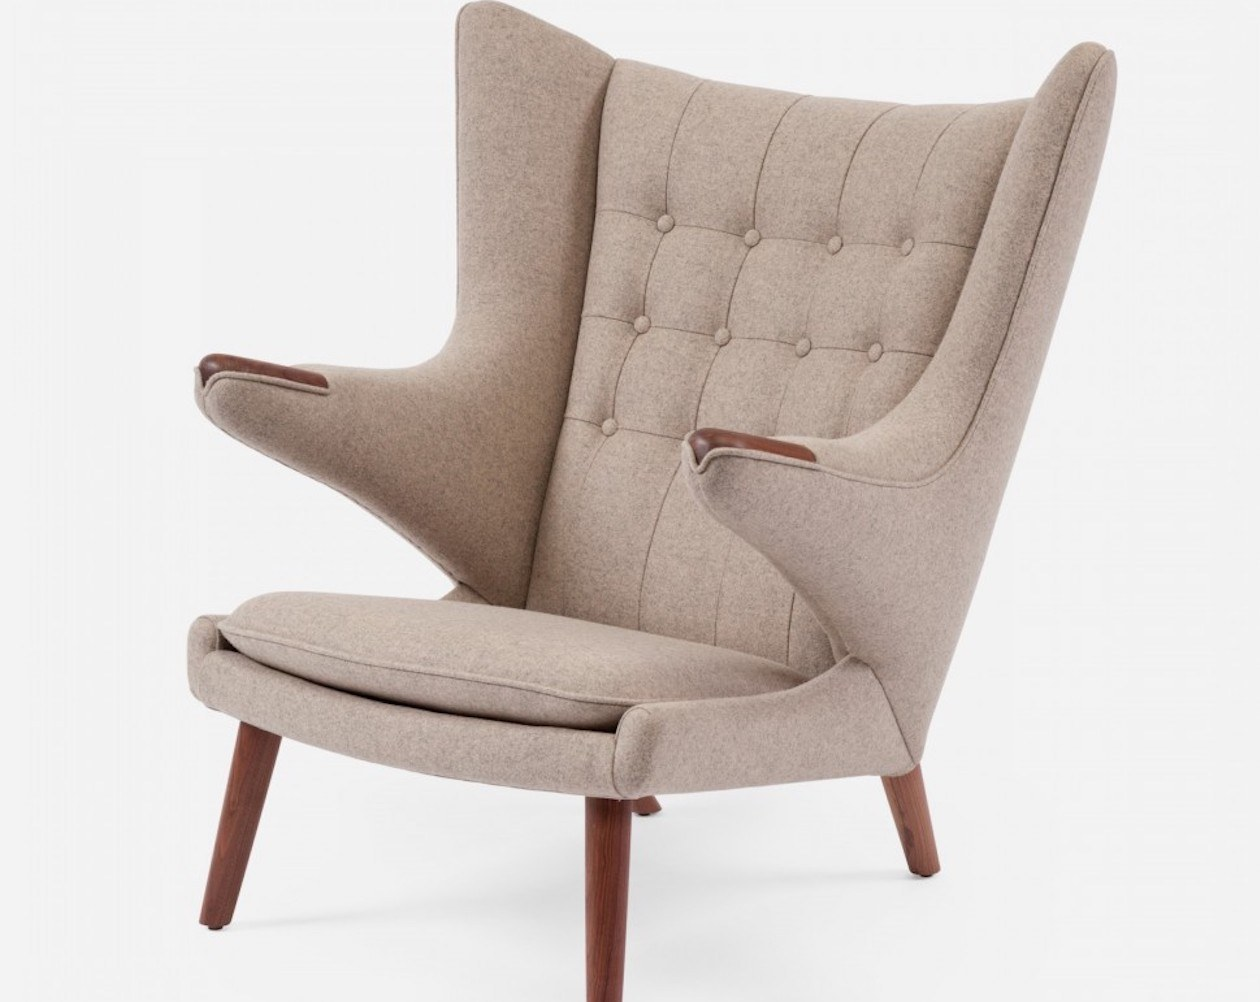 Modernica Papa Bear Upholstered Chair 187 Gadget Flow